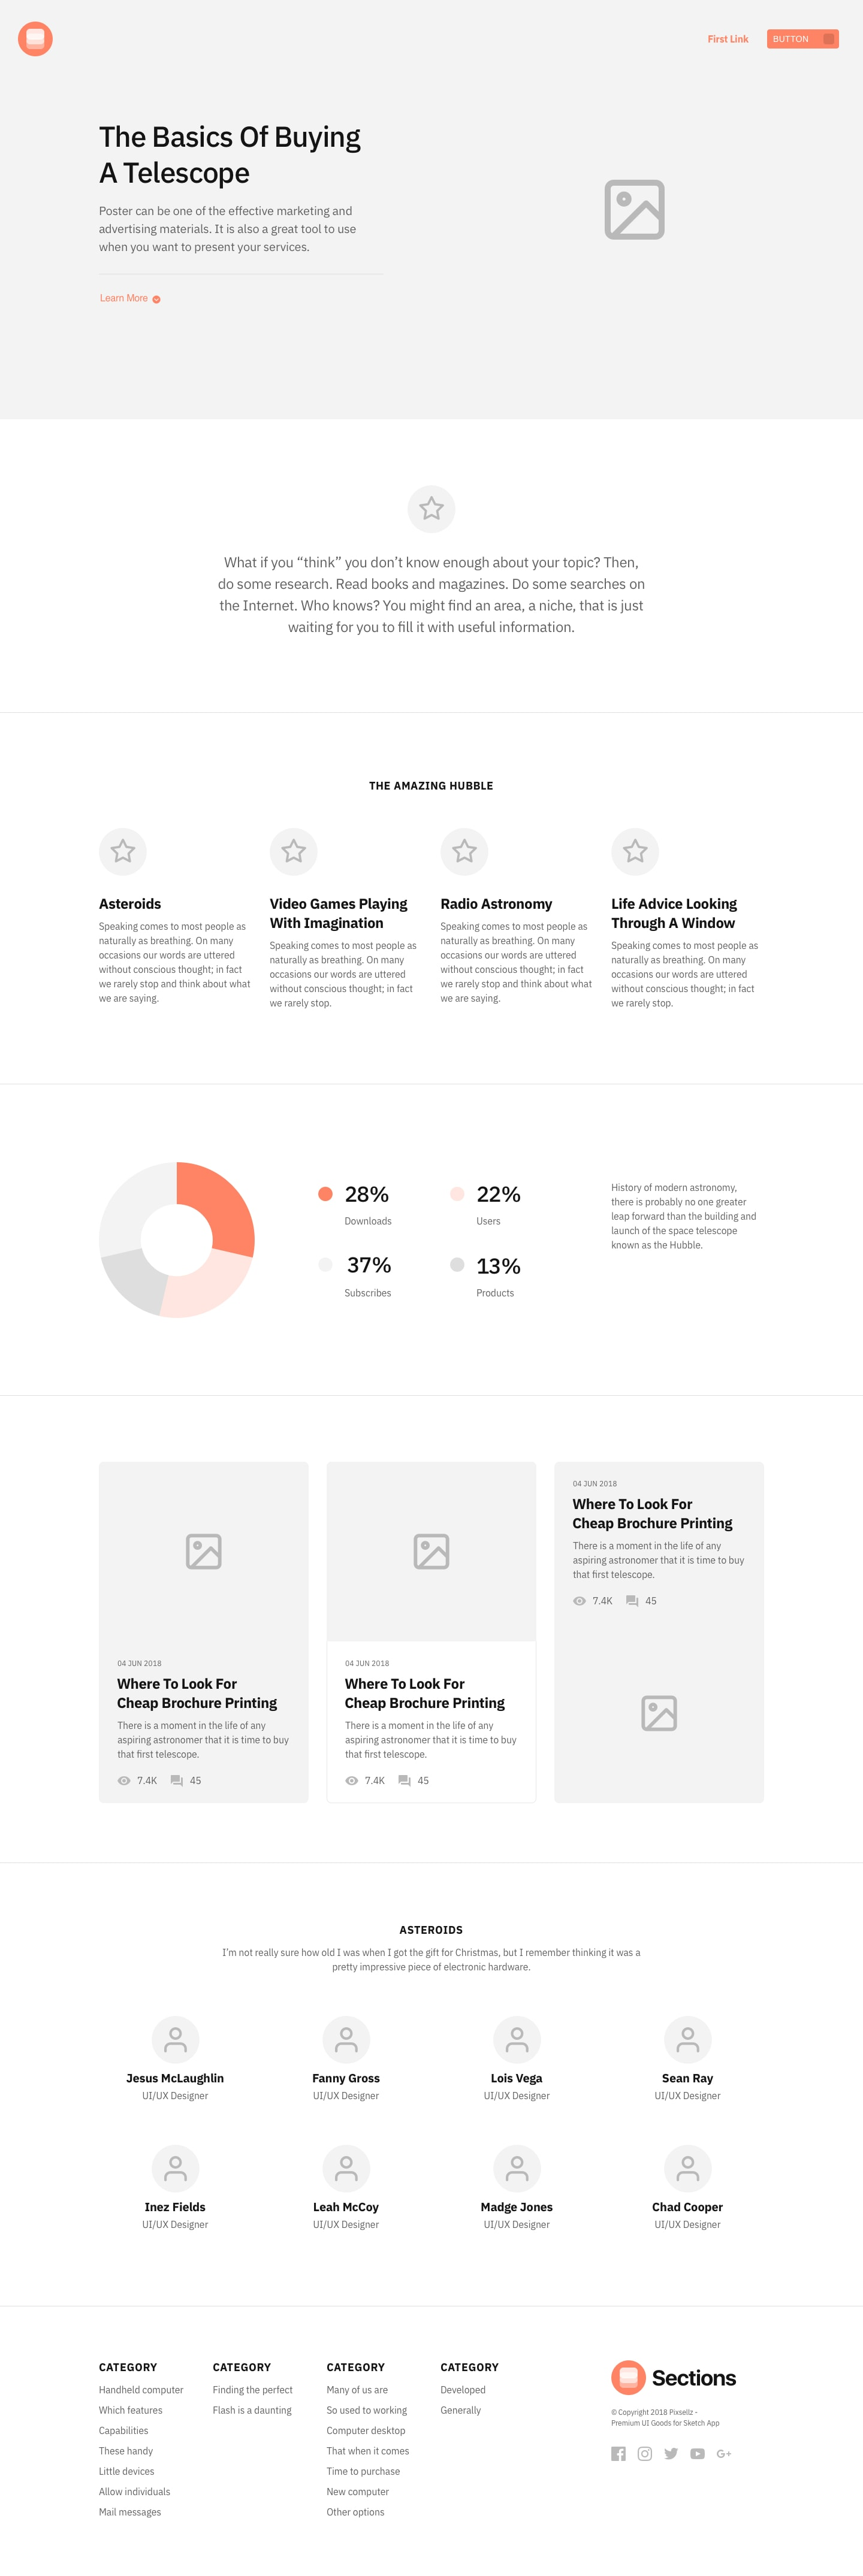 Sections - Landing Pages Wireframe Kit from UIGarage